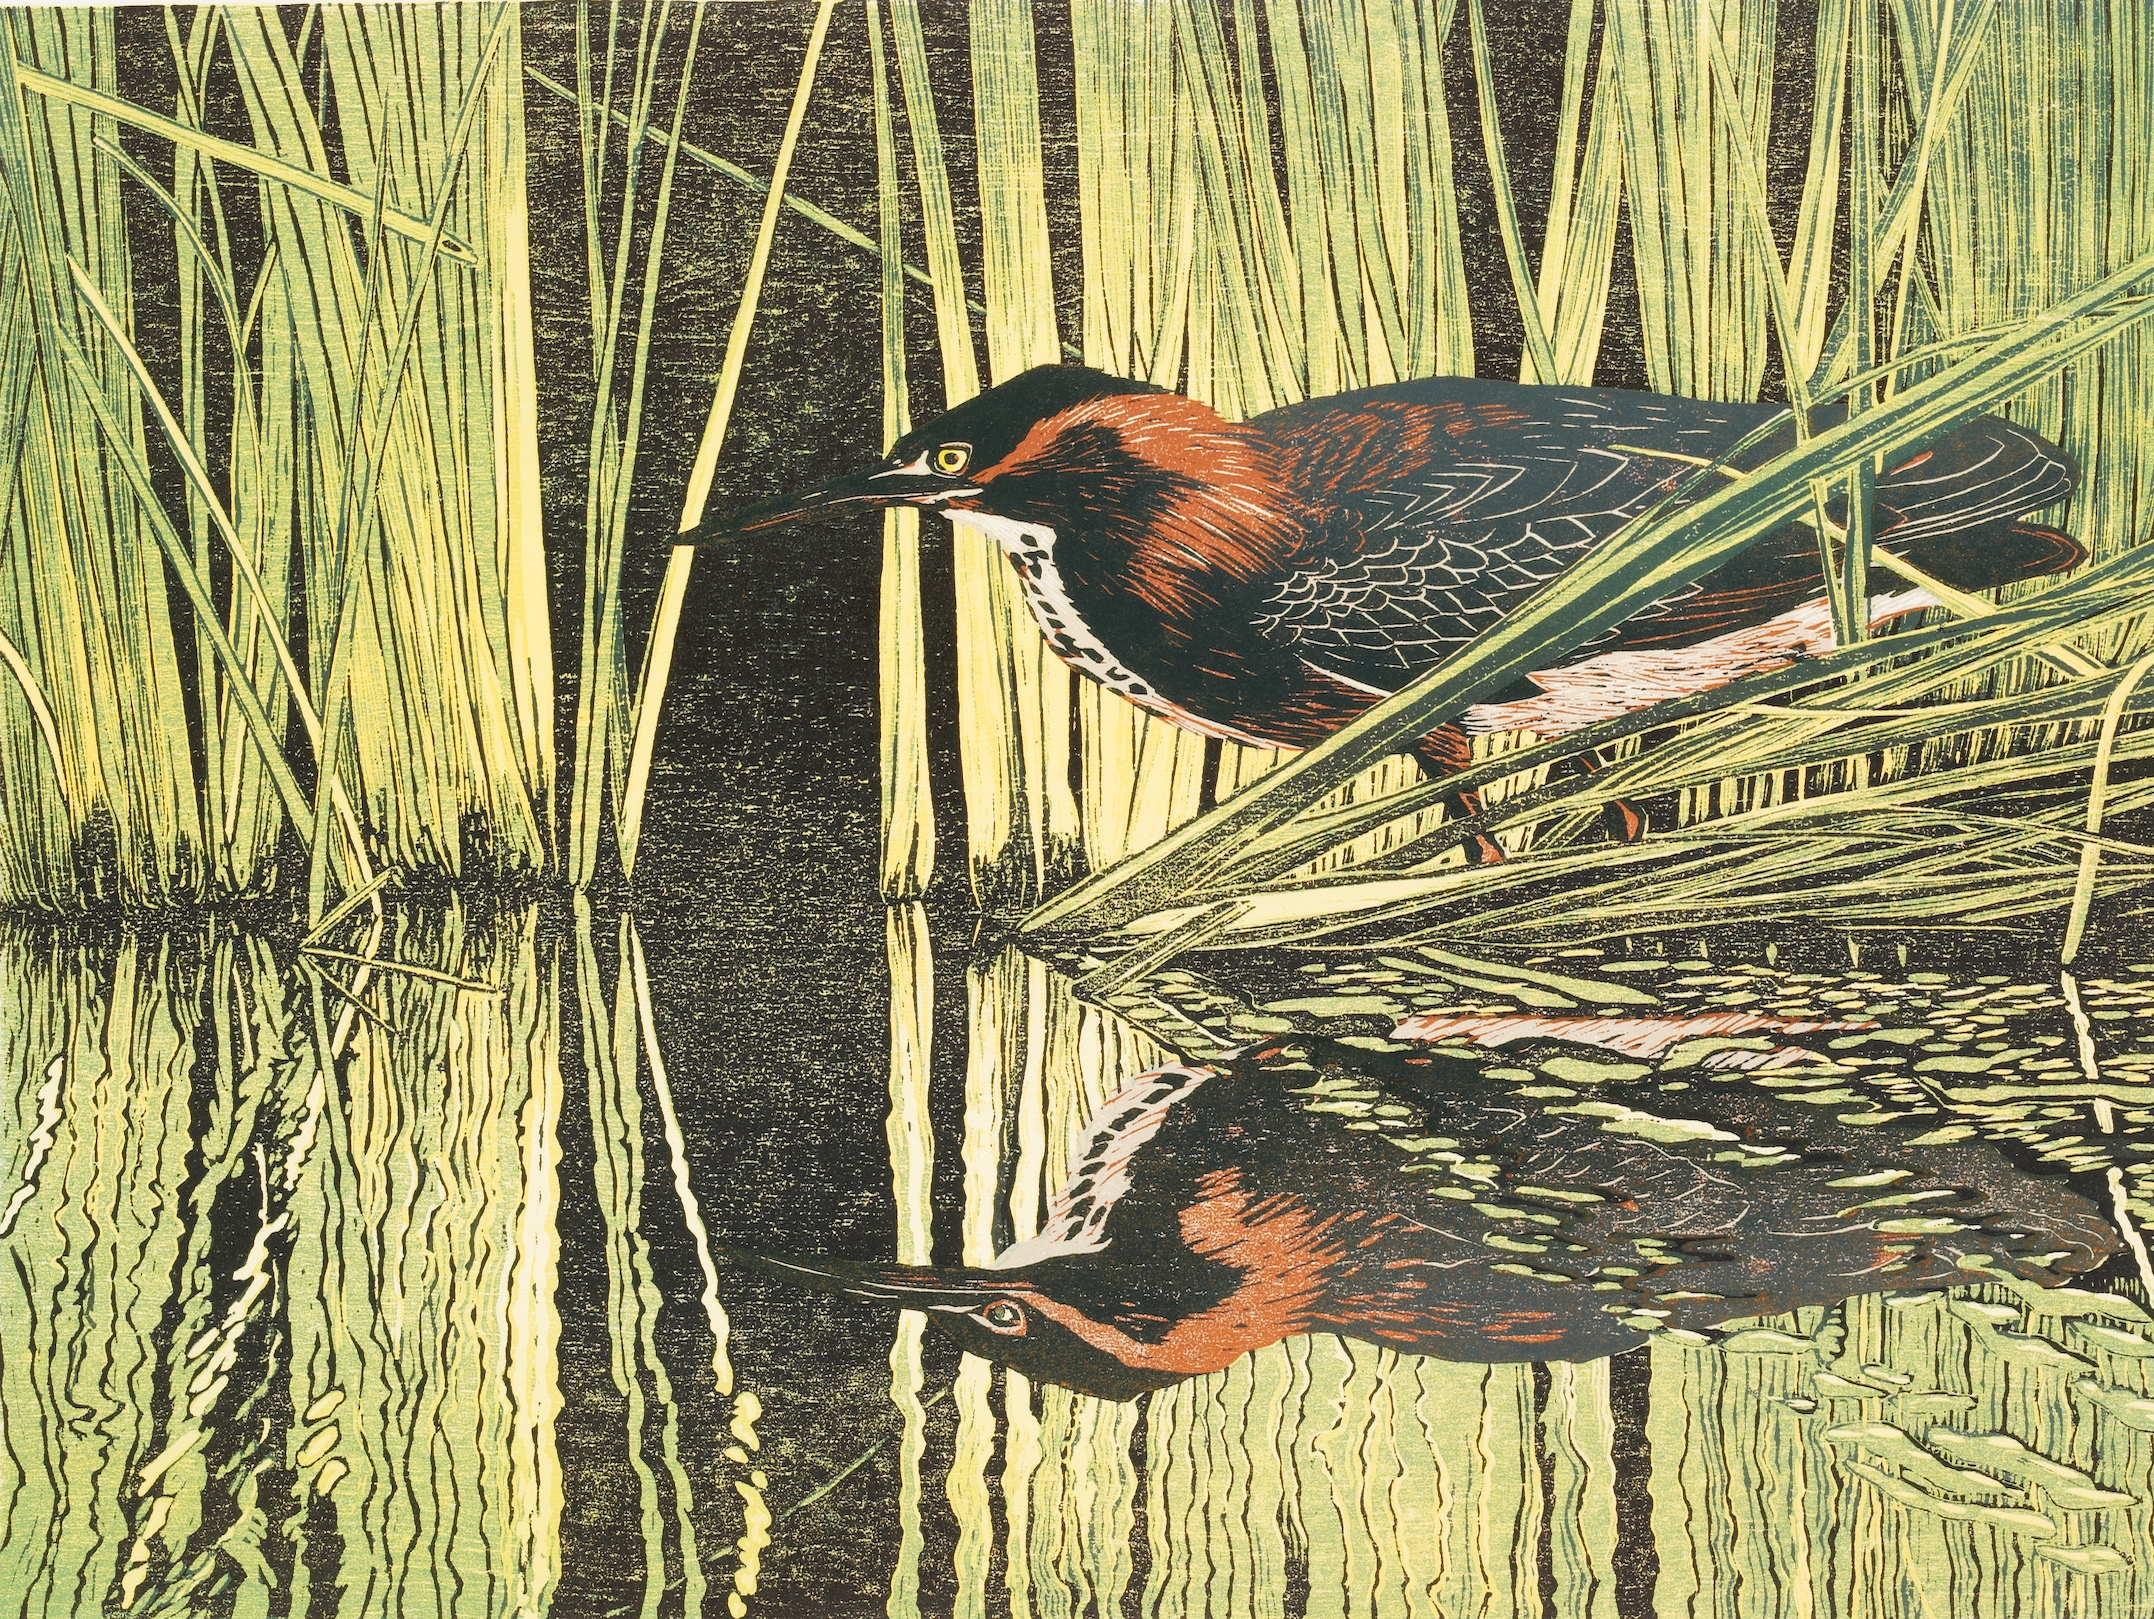 Andrea Rich,  Green Heron , 1996. Woodblock print.